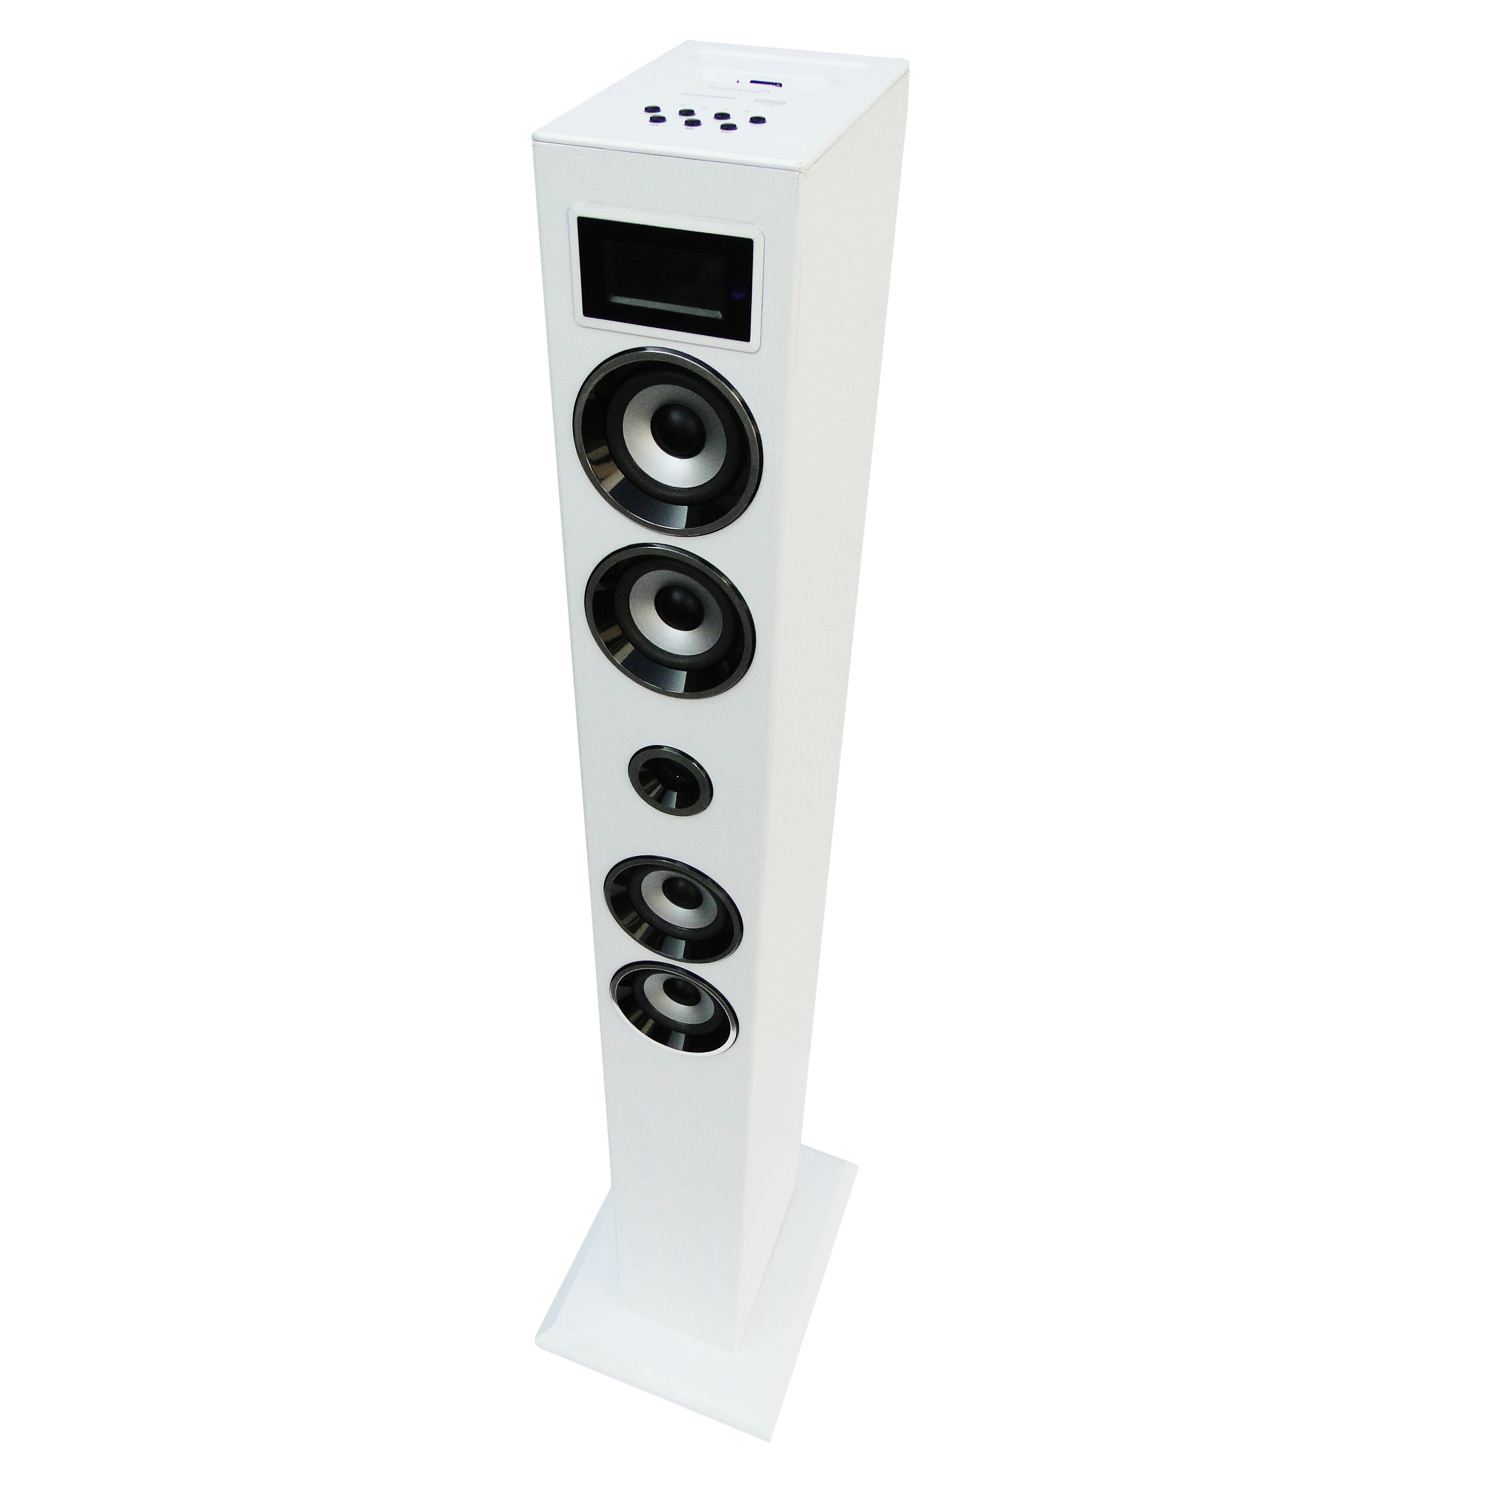 soundvision sv t04 bt blanc dock enceinte bluetooth soundvision sur. Black Bedroom Furniture Sets. Home Design Ideas